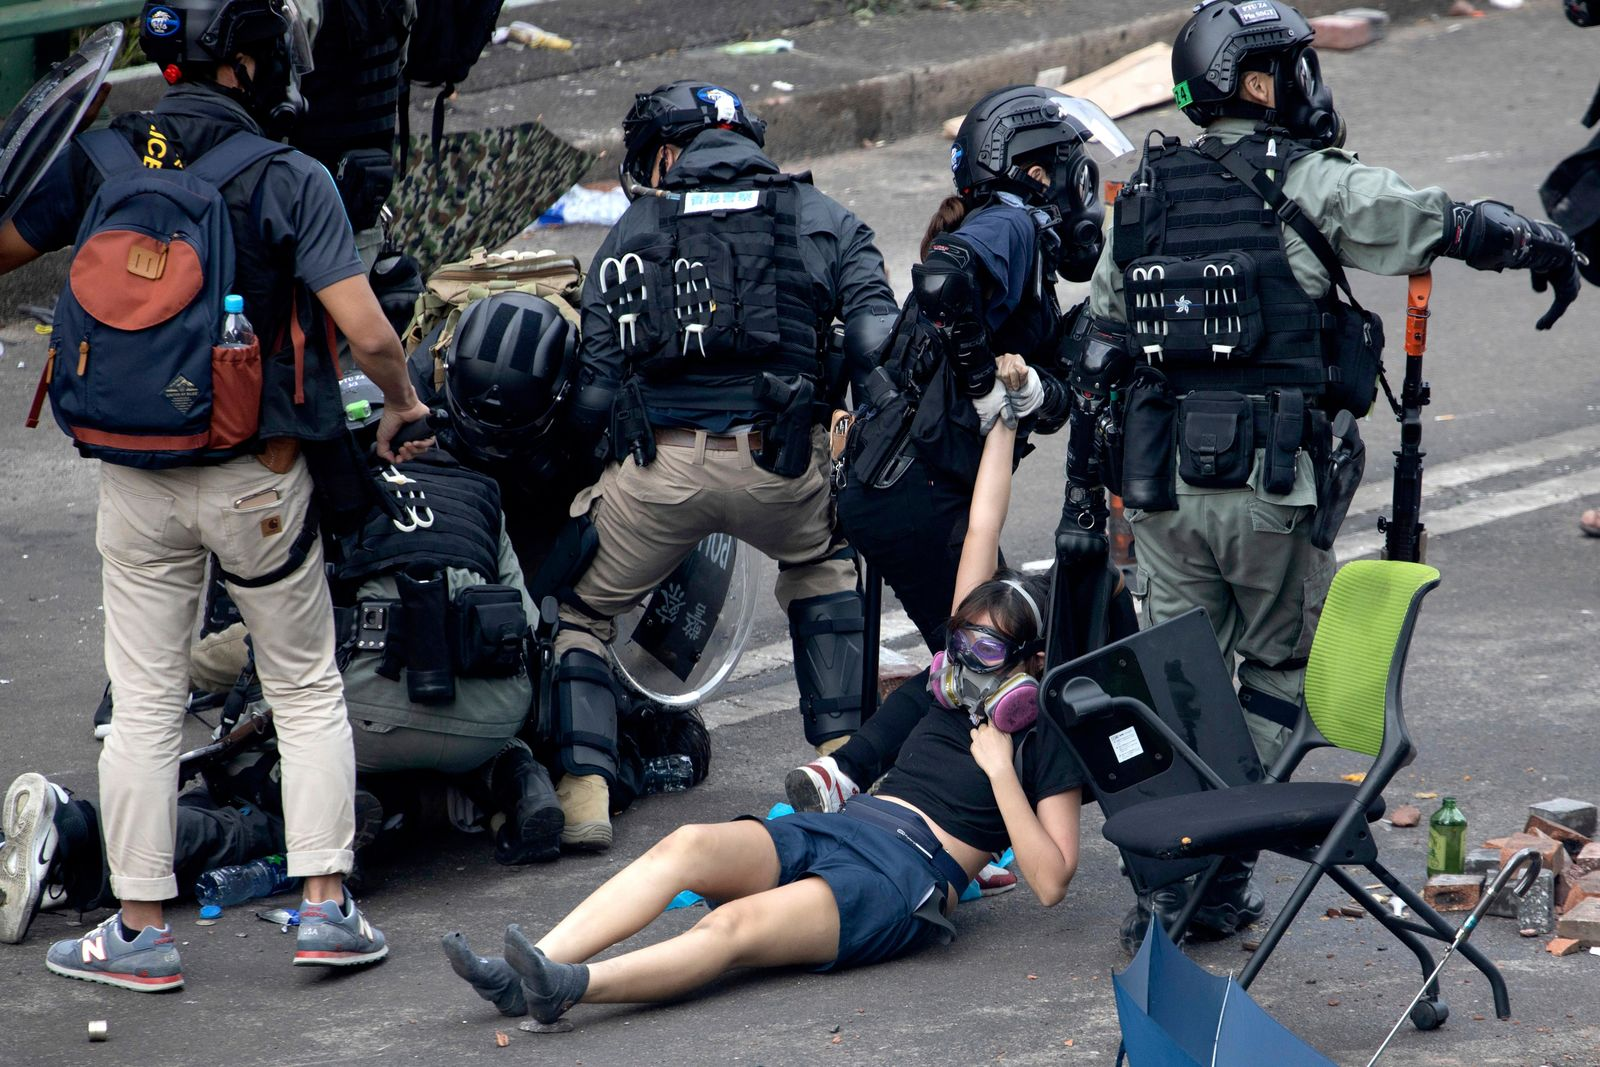 Police in riot gear drag a protester who was trying to flee from the Hong Kong Polytechnic University in Hong Kong, Monday, Nov. 18, 2019. (AP Photo/Ng Han Guan)